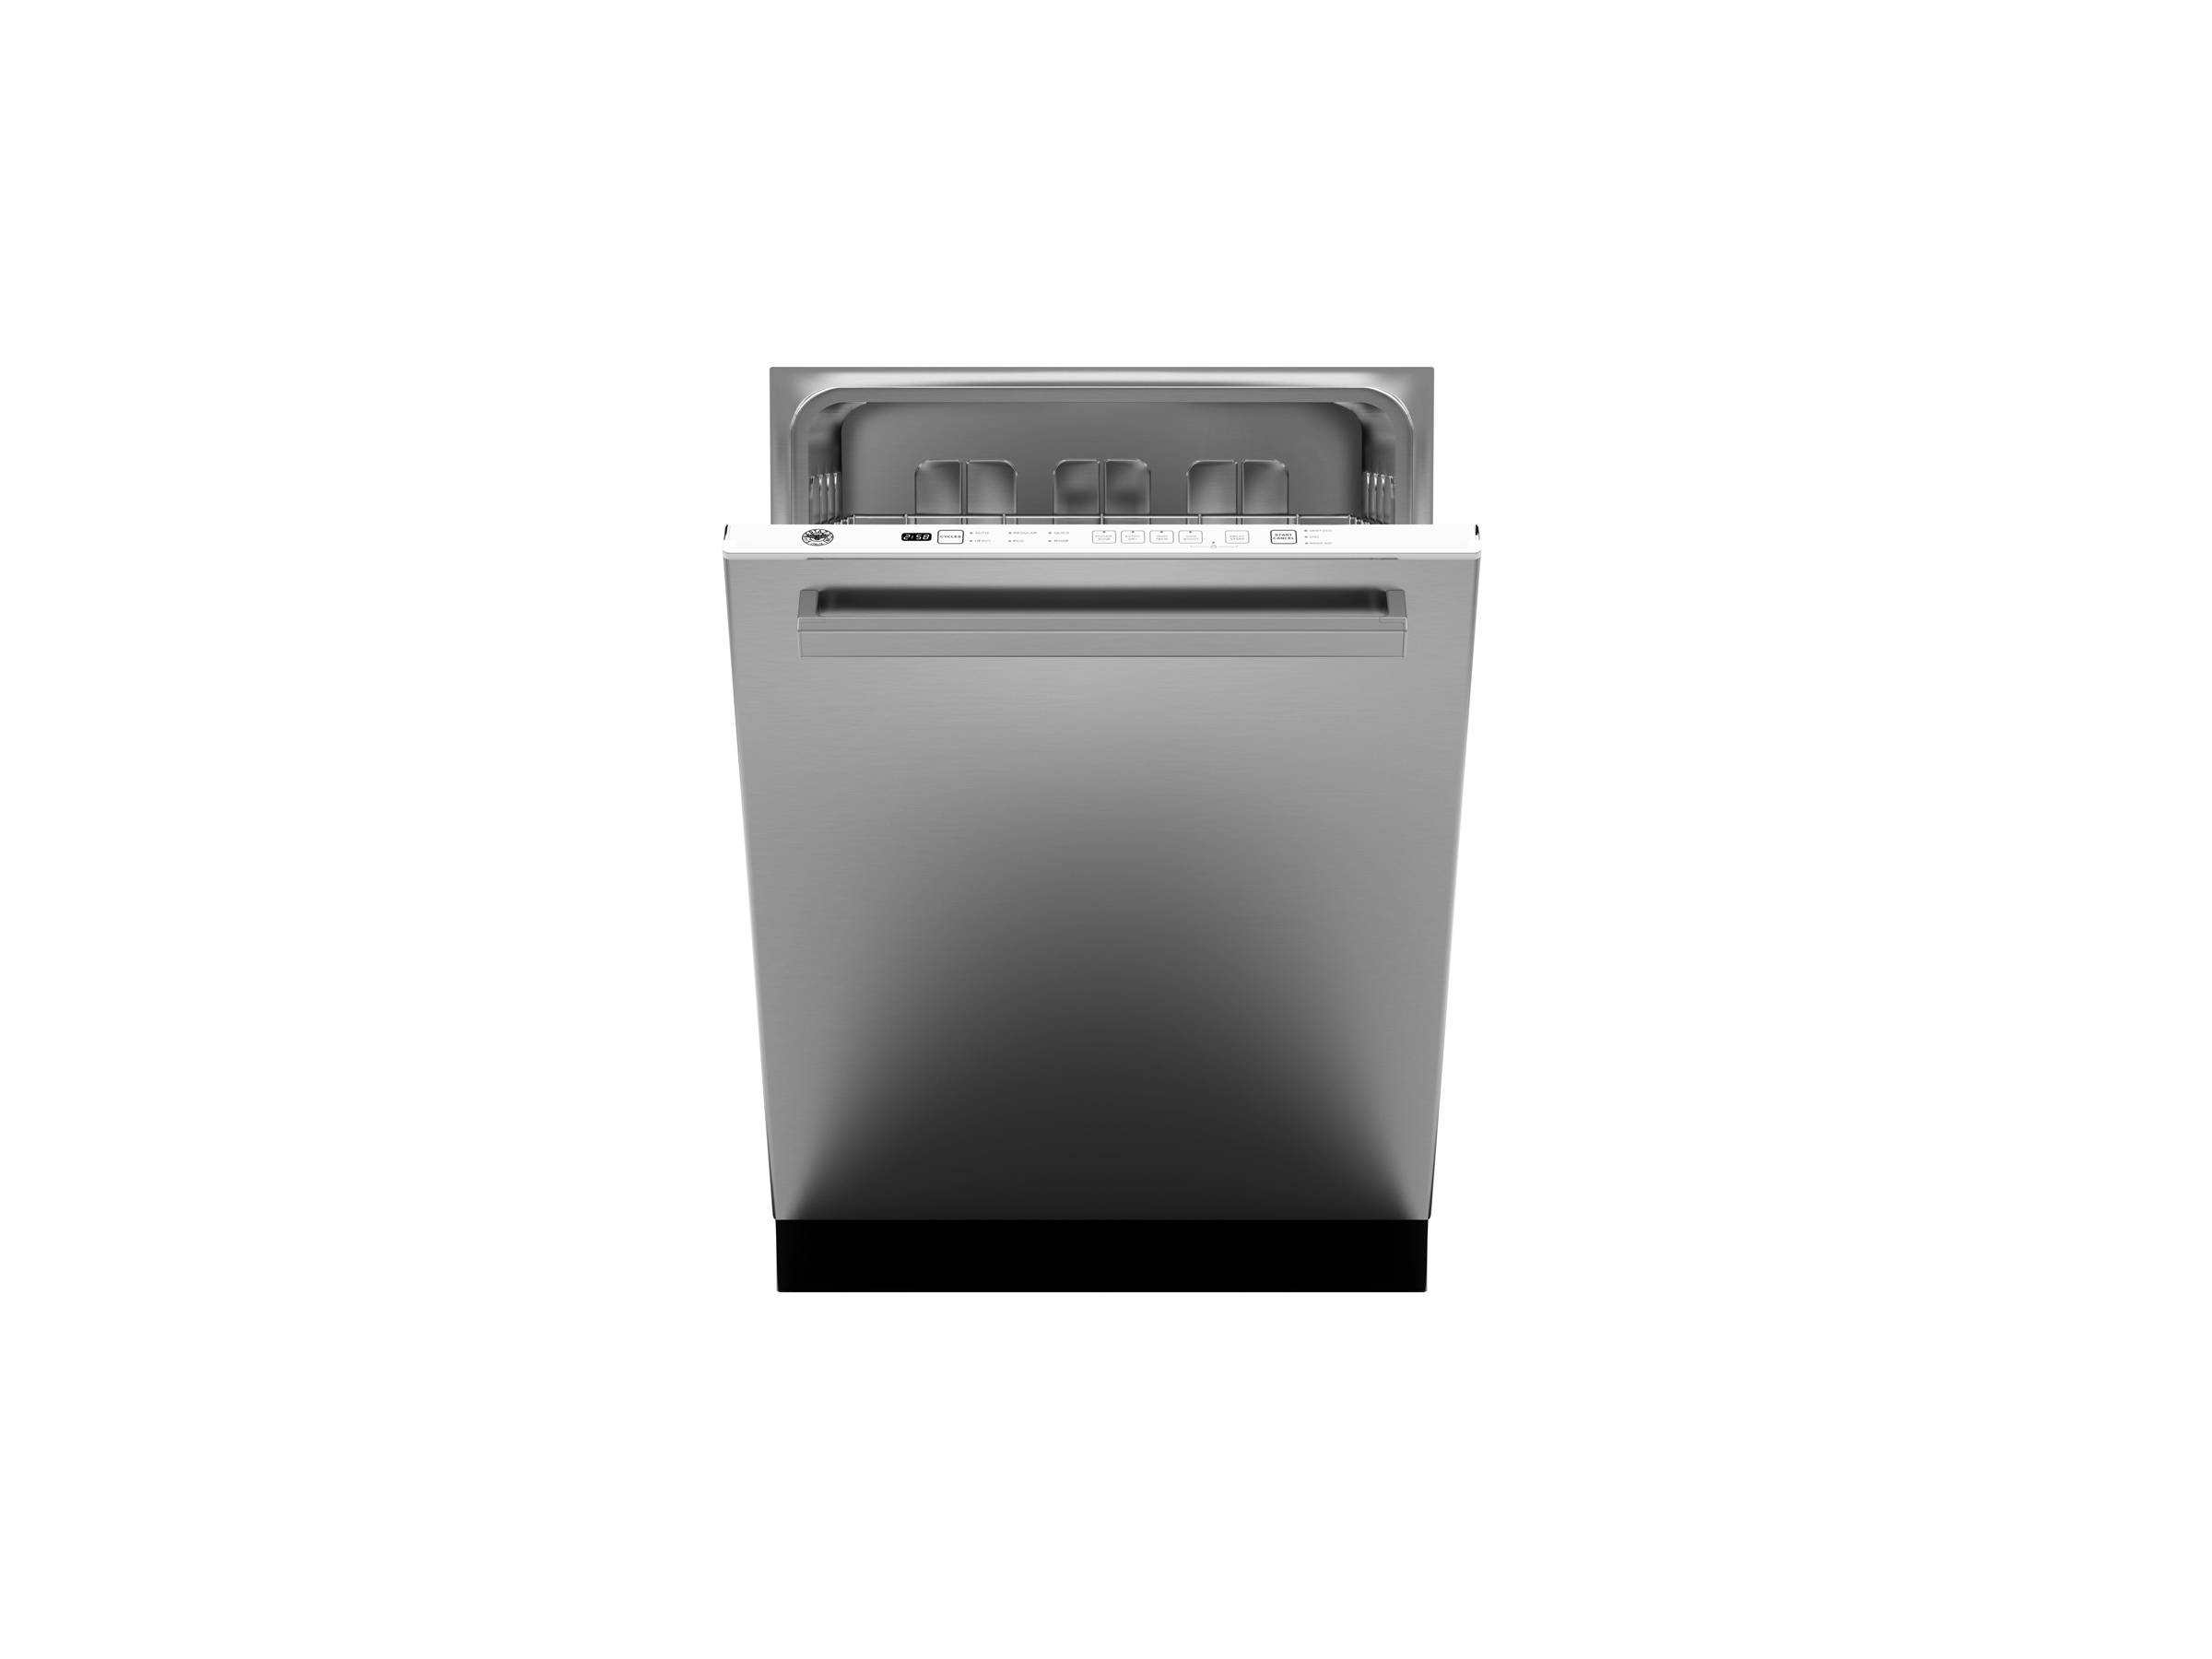 24 Panel Installed Dishwasher 14 settings 48dB | Bertazzoni - Stainless